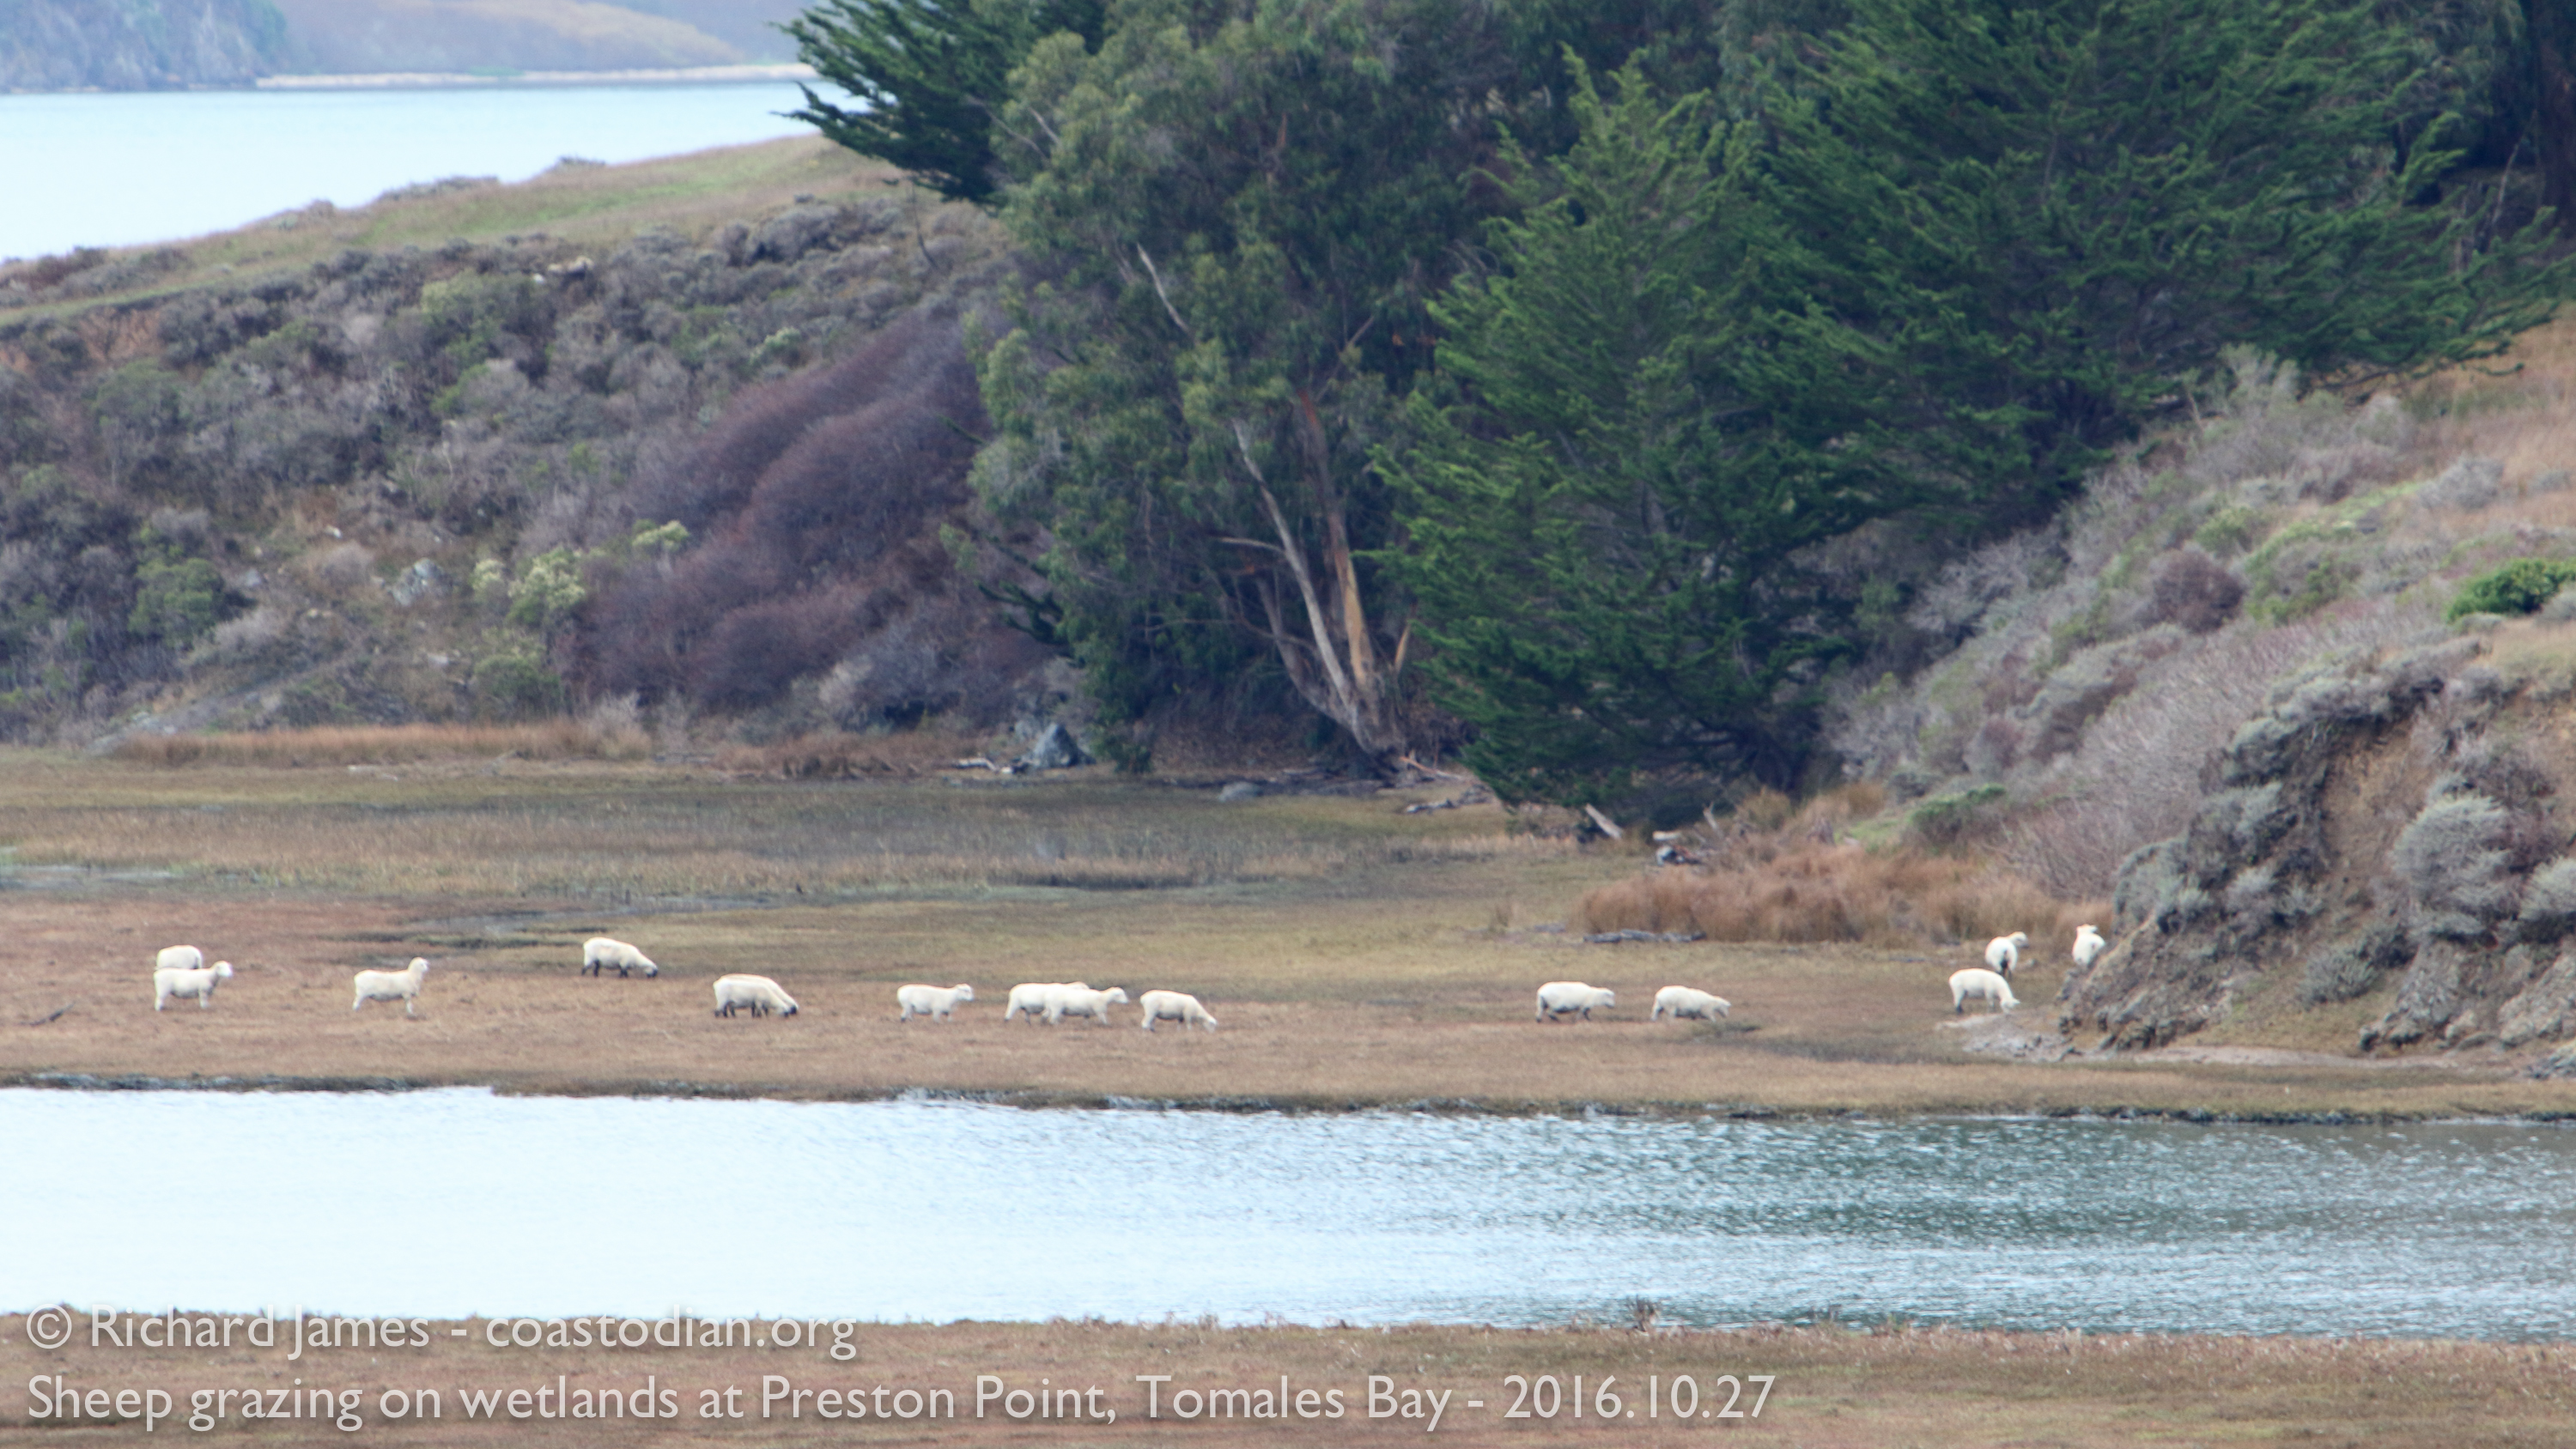 Sheep grazng on wetlands at Preston Point. ~ 400 meters away are millions of oysters growing in the mudflats.